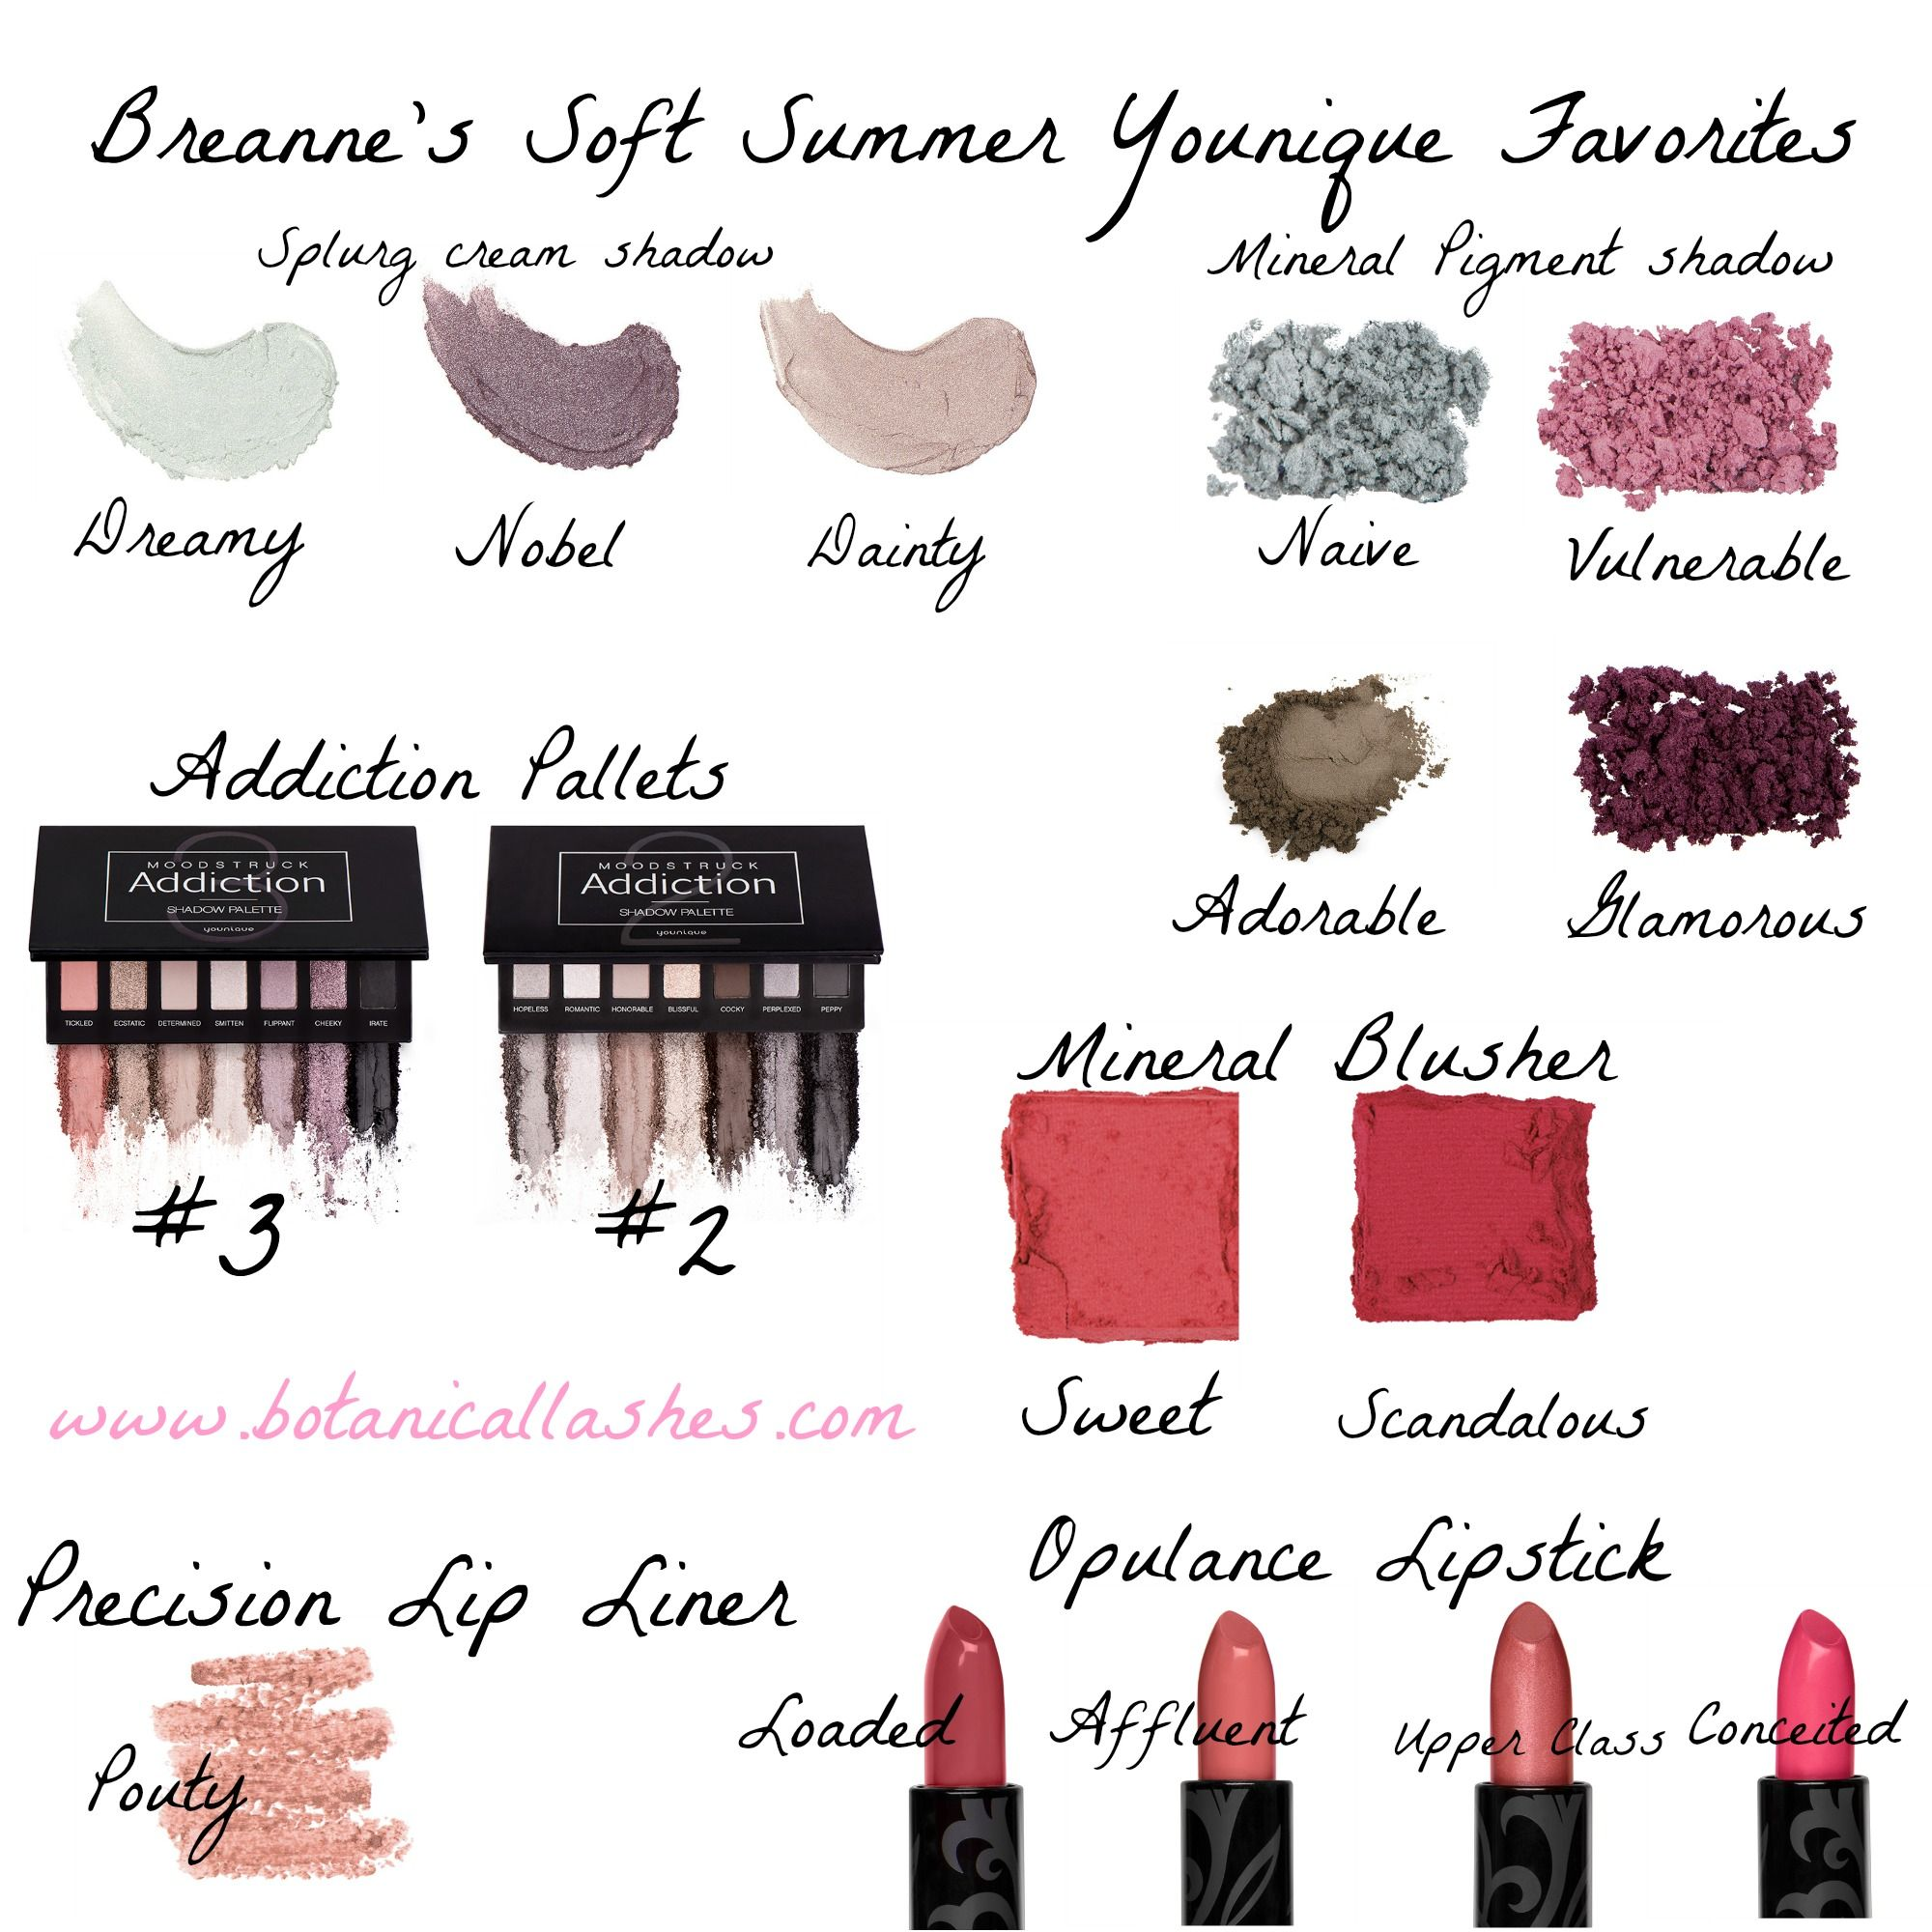 Website soft colors - My Favorite Soft Summer Swatched And Worn Soft Summer Makeup By Younique Send Me A